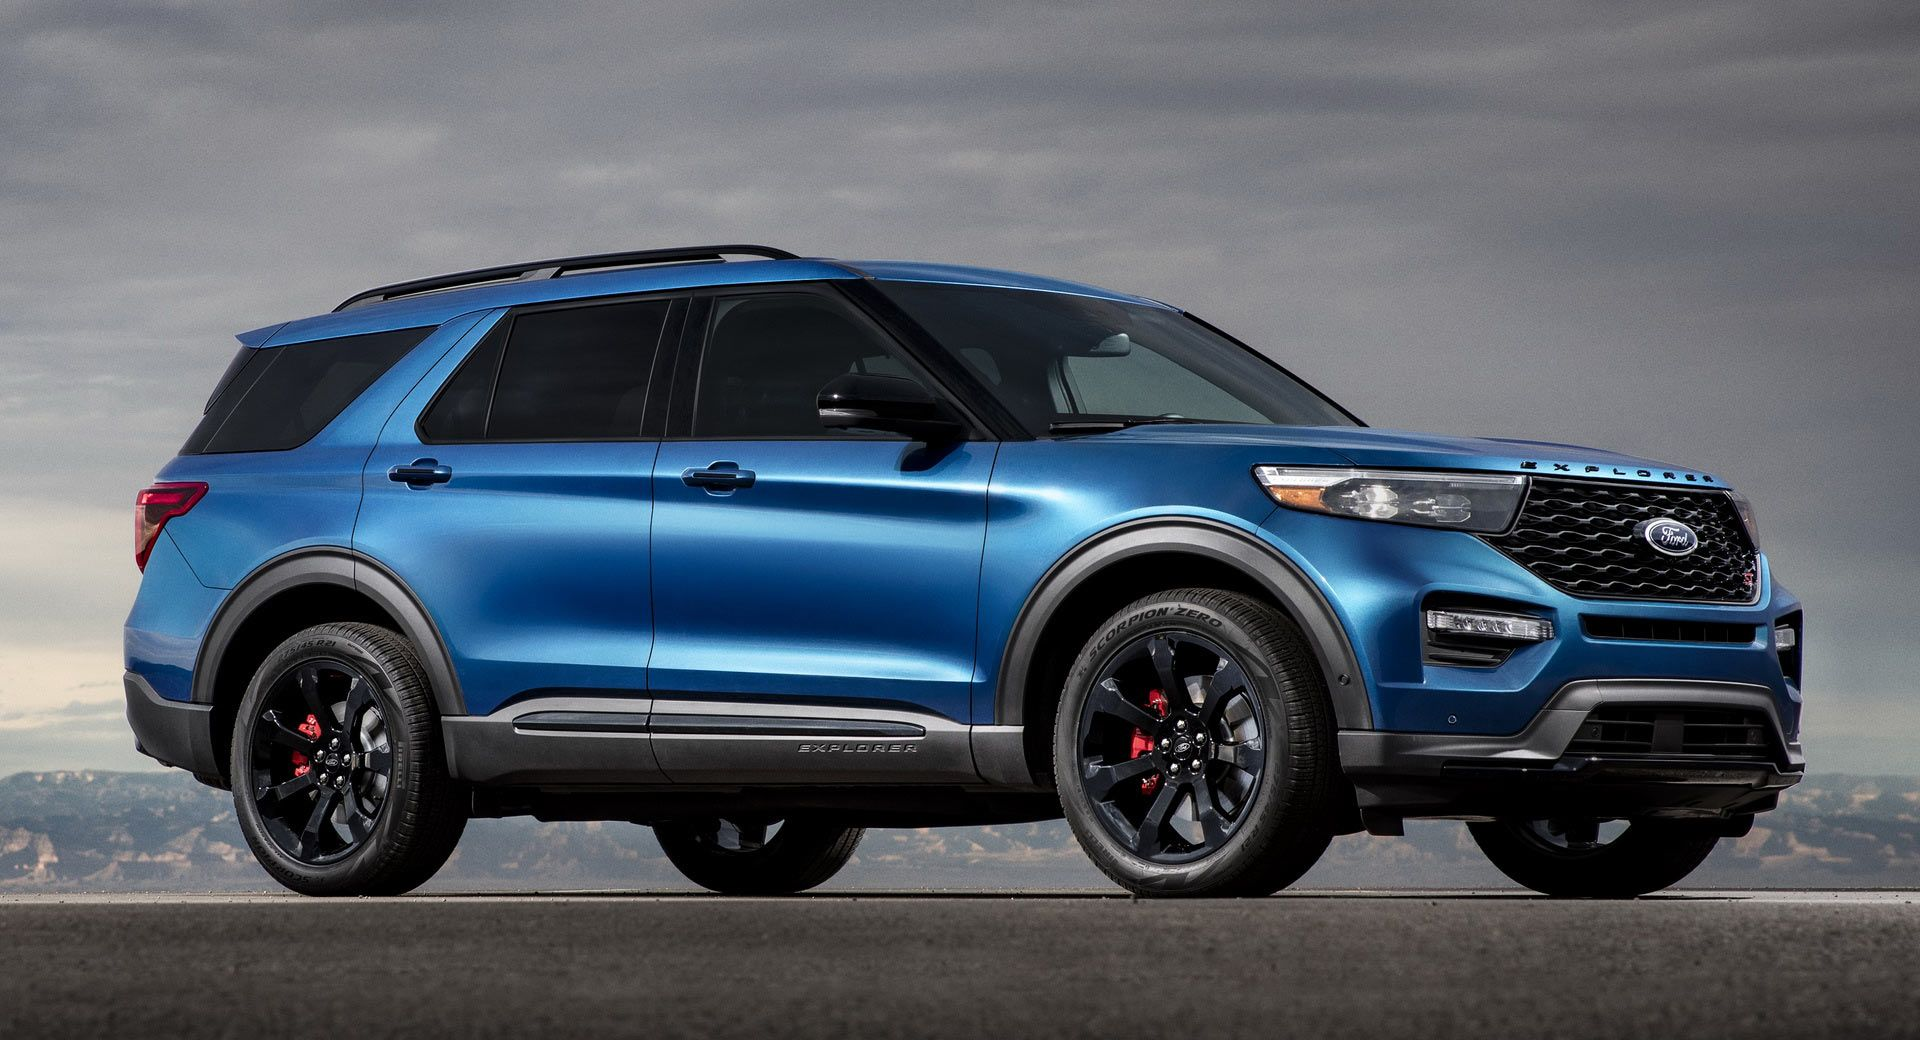 2020 Ford Explorer Prices Bumped From 400 To 5 365 St 8 115 More Than Old Sport Carscoops 2020 Ford Explorer Ford Explorer Ford Explorer Sport